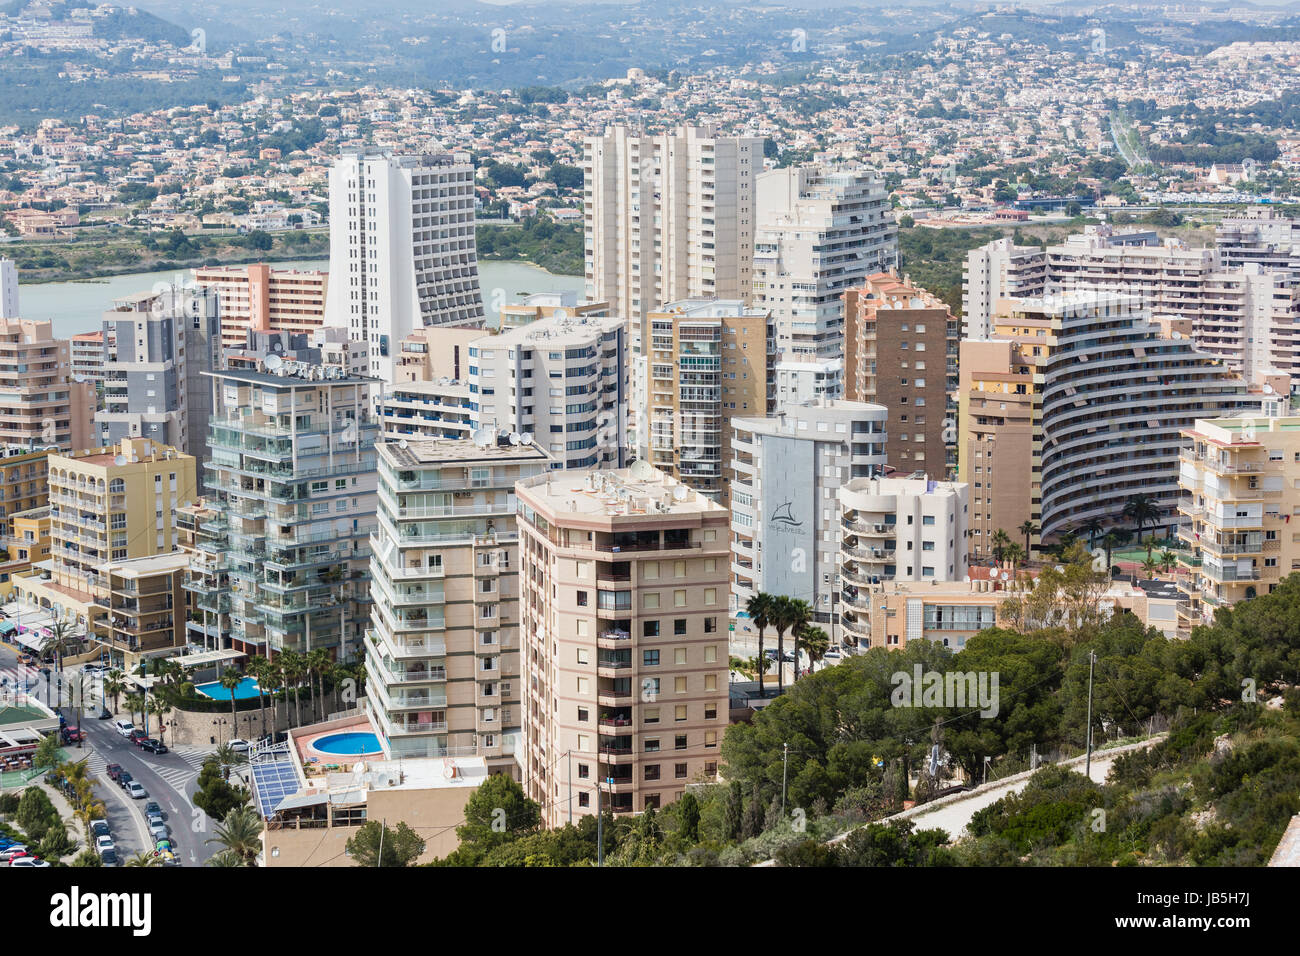 skyscrapers in the city of calp calpe on the spanish mediterranean